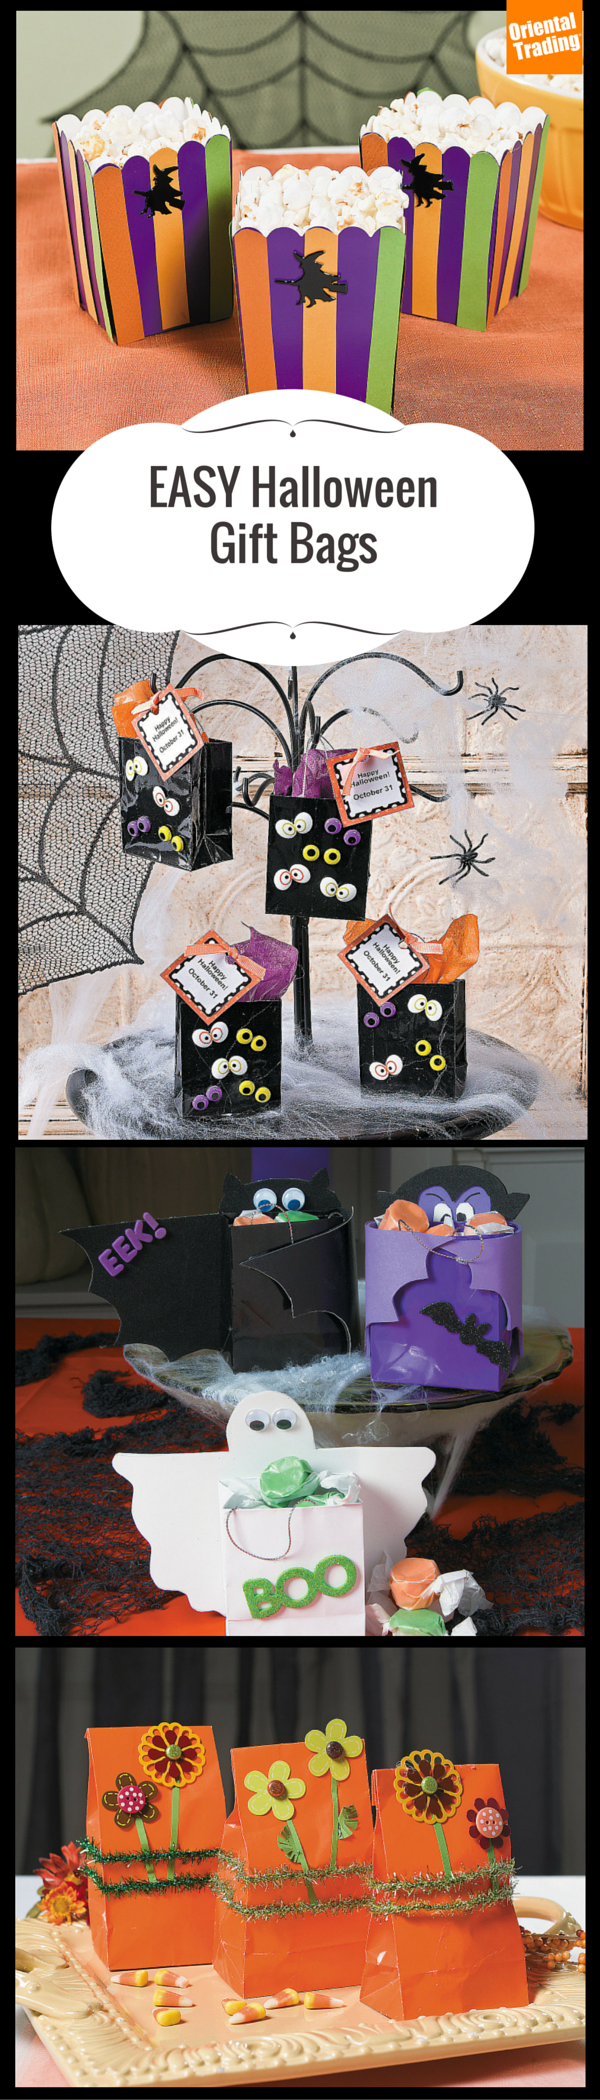 No October party is complete without a Halloween gift bag, and ...